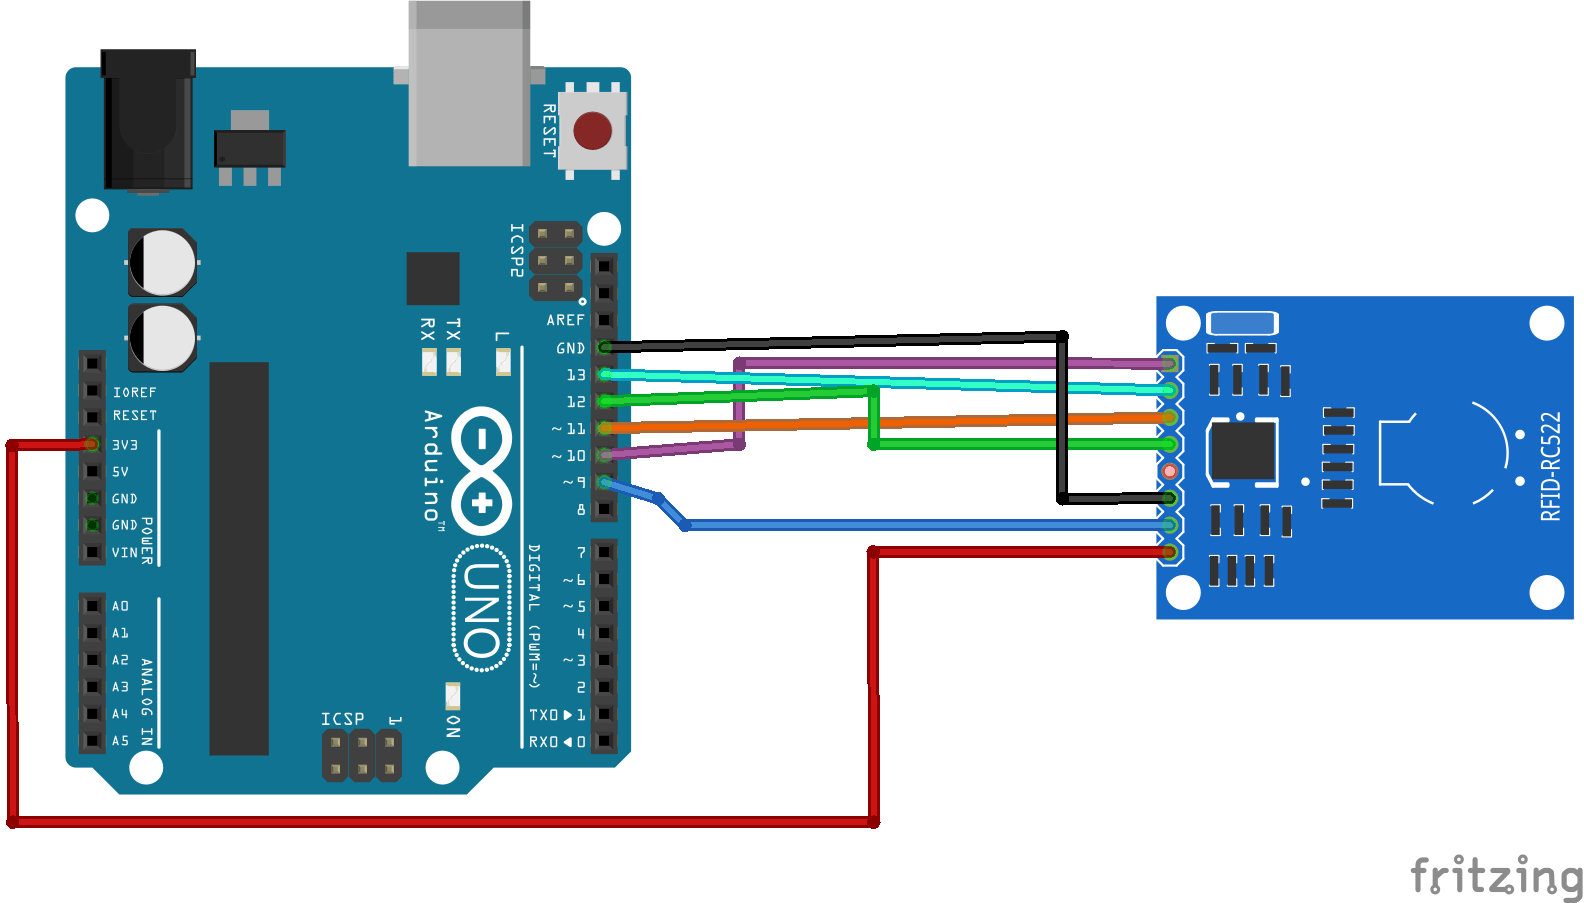 Mfrc rfid reader with arduino tutorial random nerd